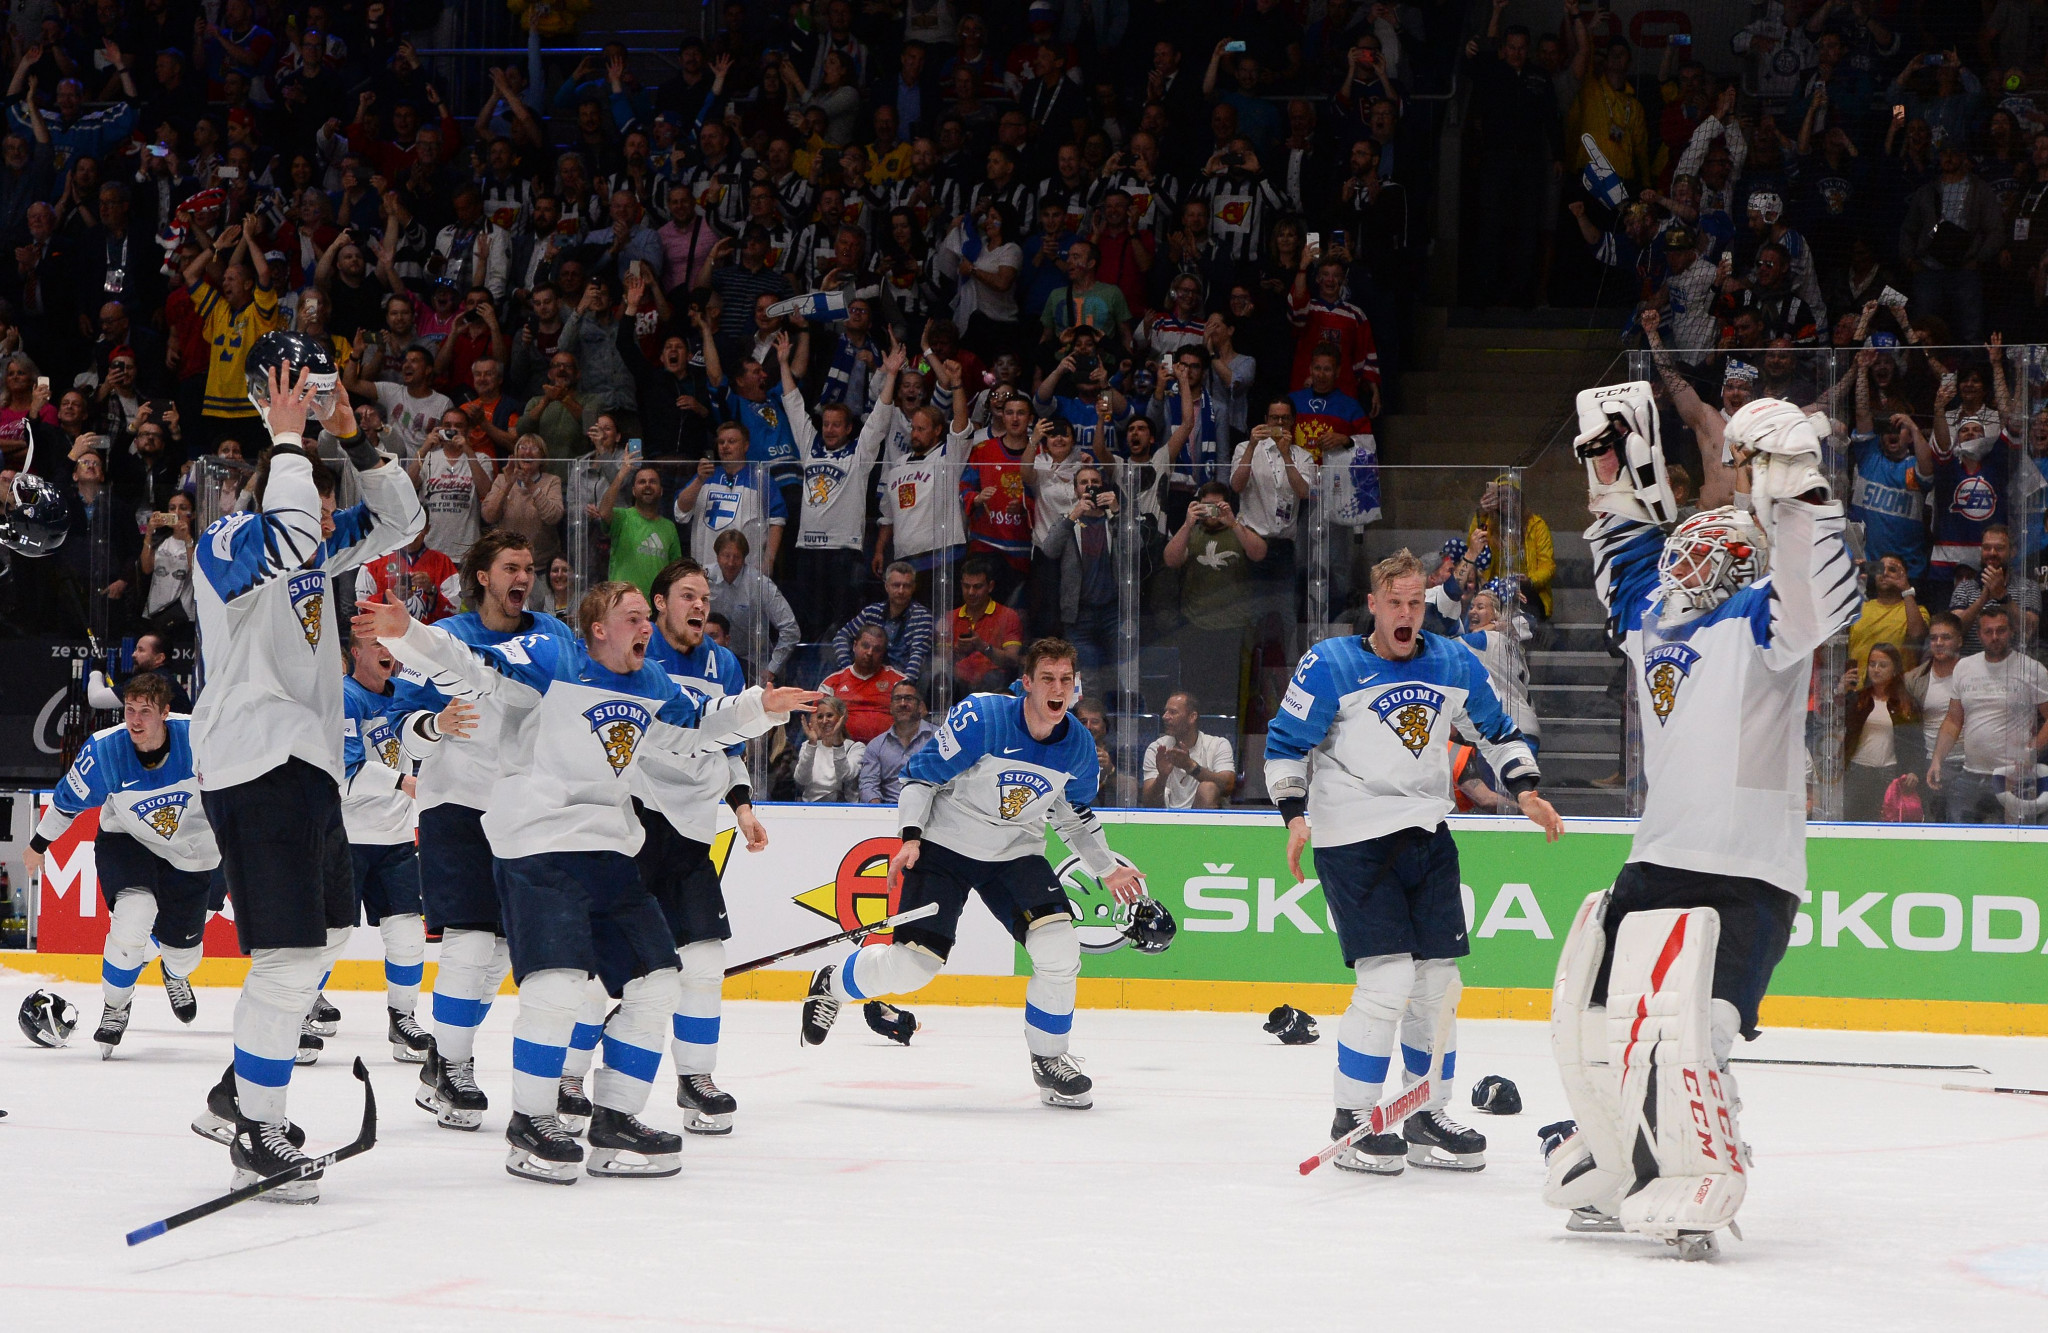 The Finnish men's ice hockey team were crowned world champions in 2019 and will be aiming to secure their first Olympic gold at Beijing 2022 ©Getty Images